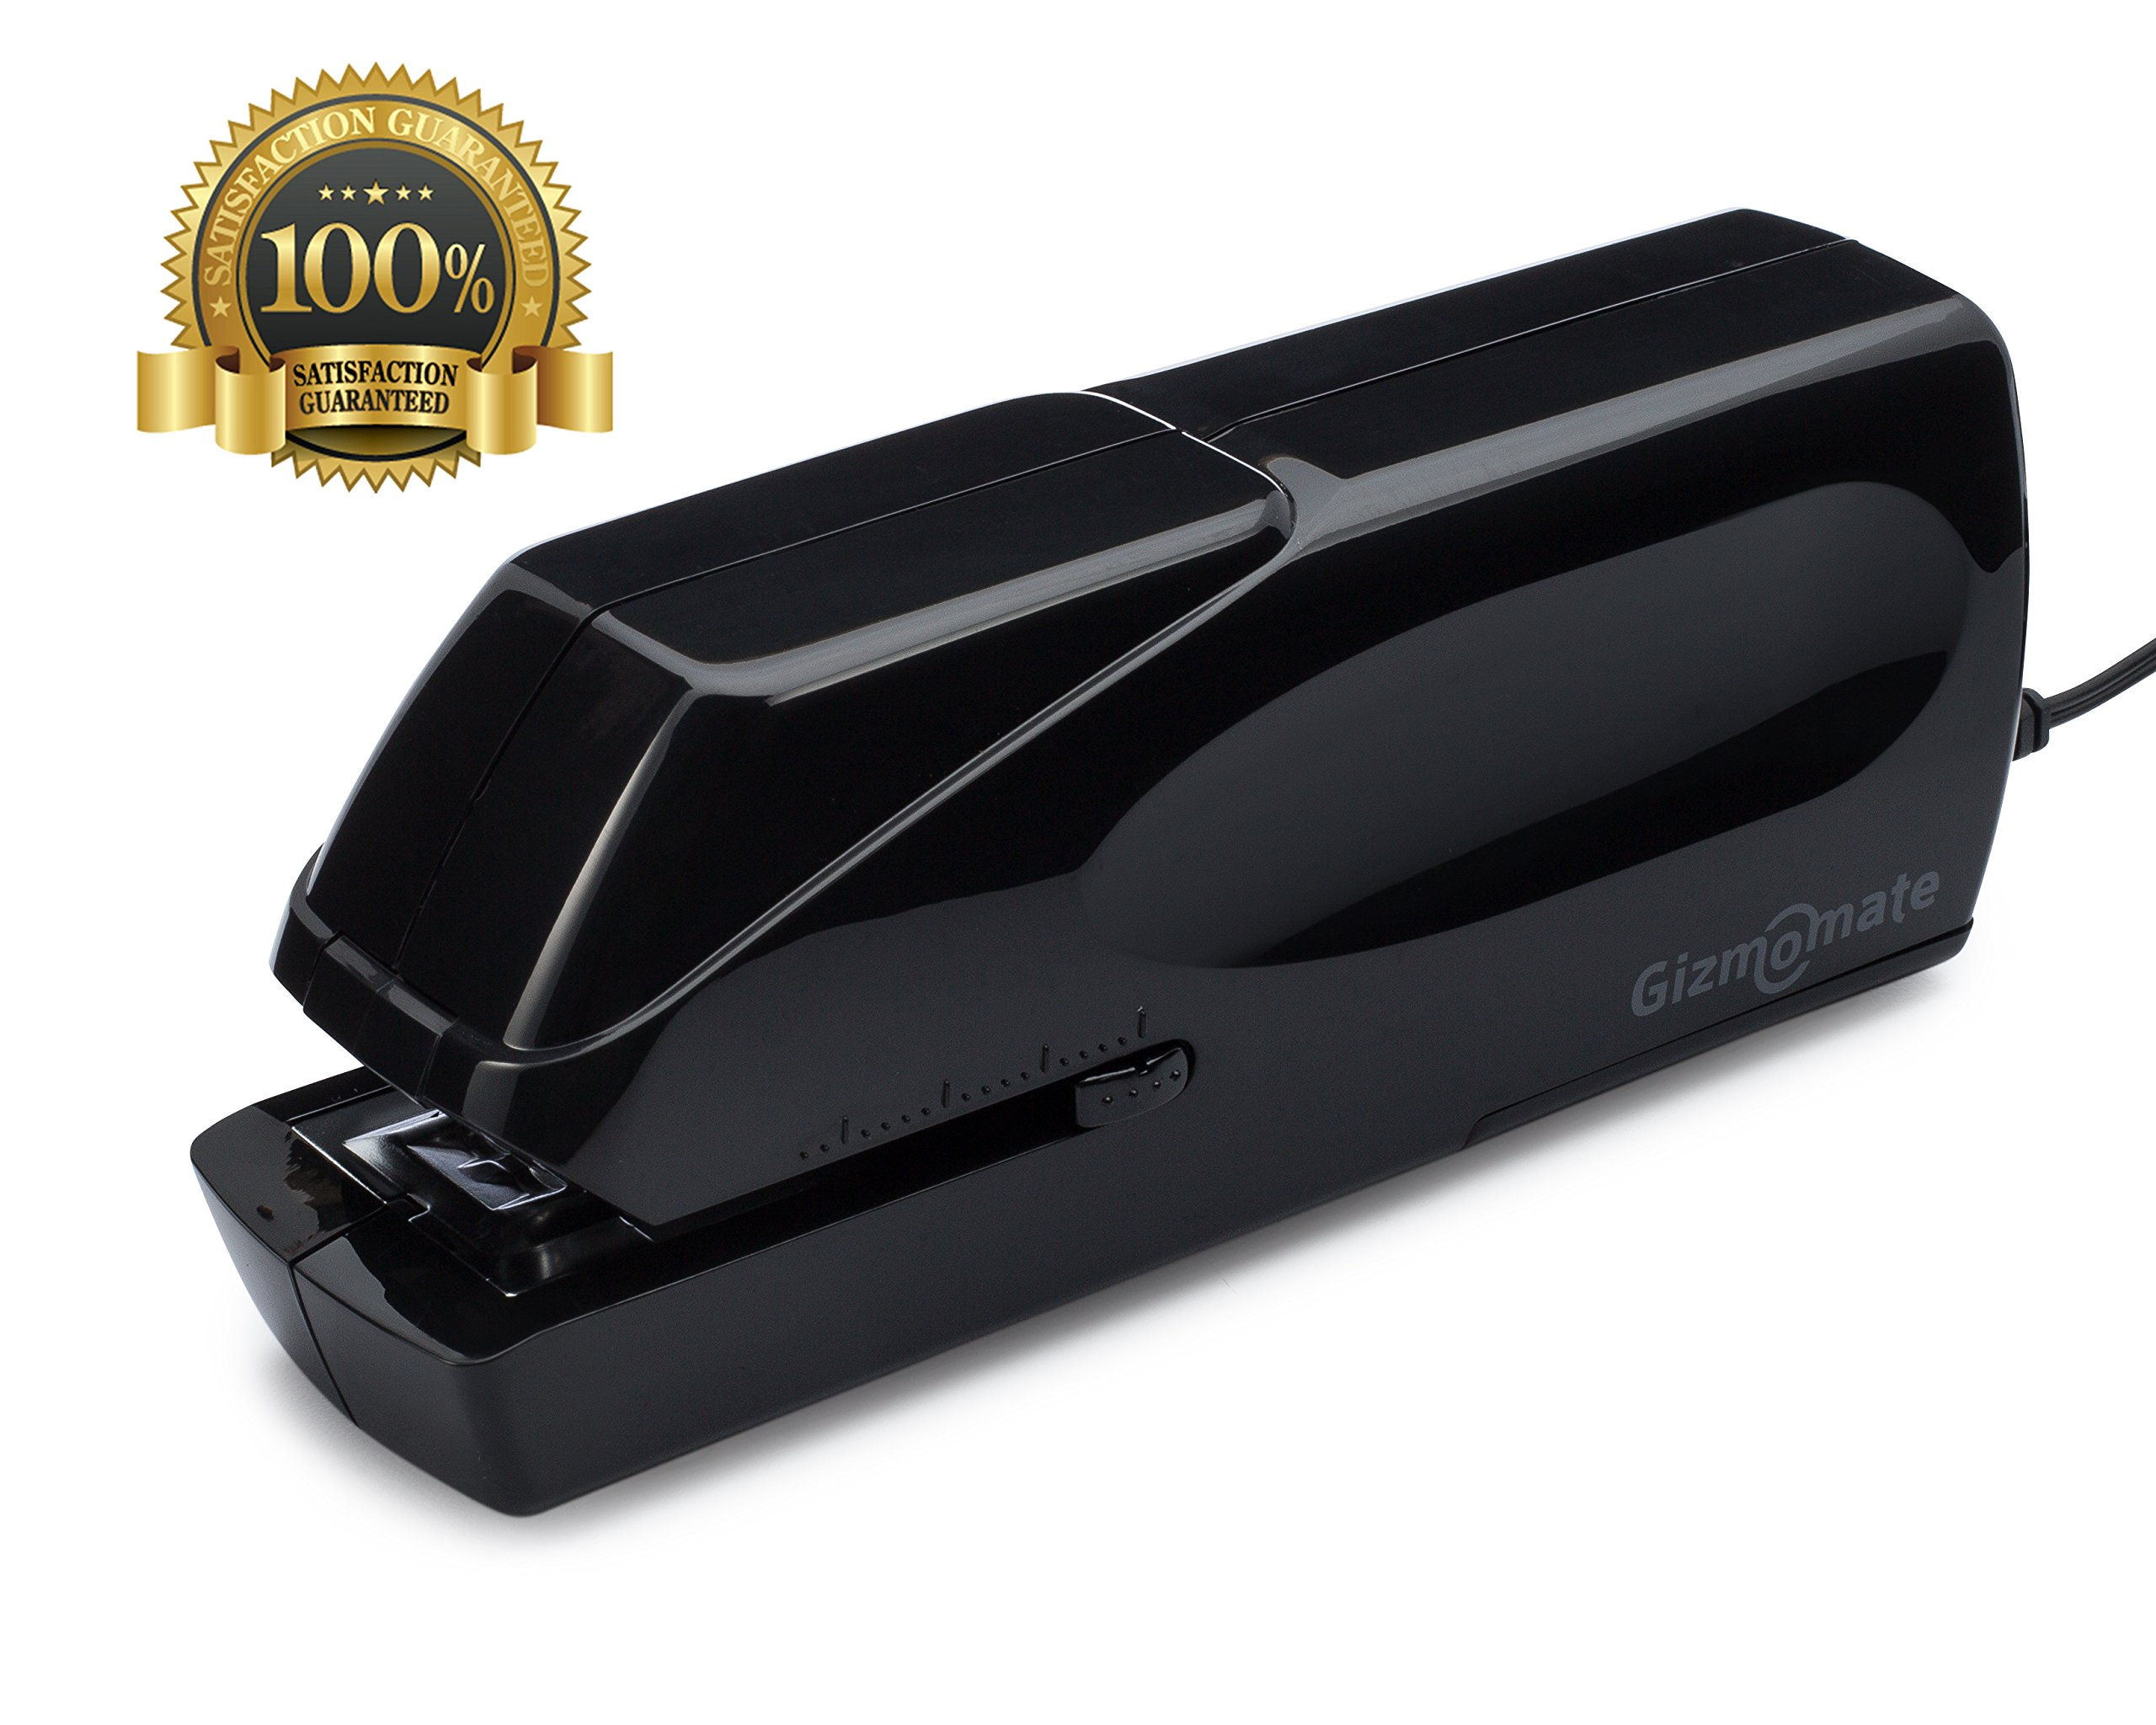 GM-X Automatic Electric Stapler, Heavy Duty Jam-Free 25 Sheet Full-Strip Capacity ✮ Free Staples & AC Cable with Extended Warranty ✮ Professional and Home Office Stapler